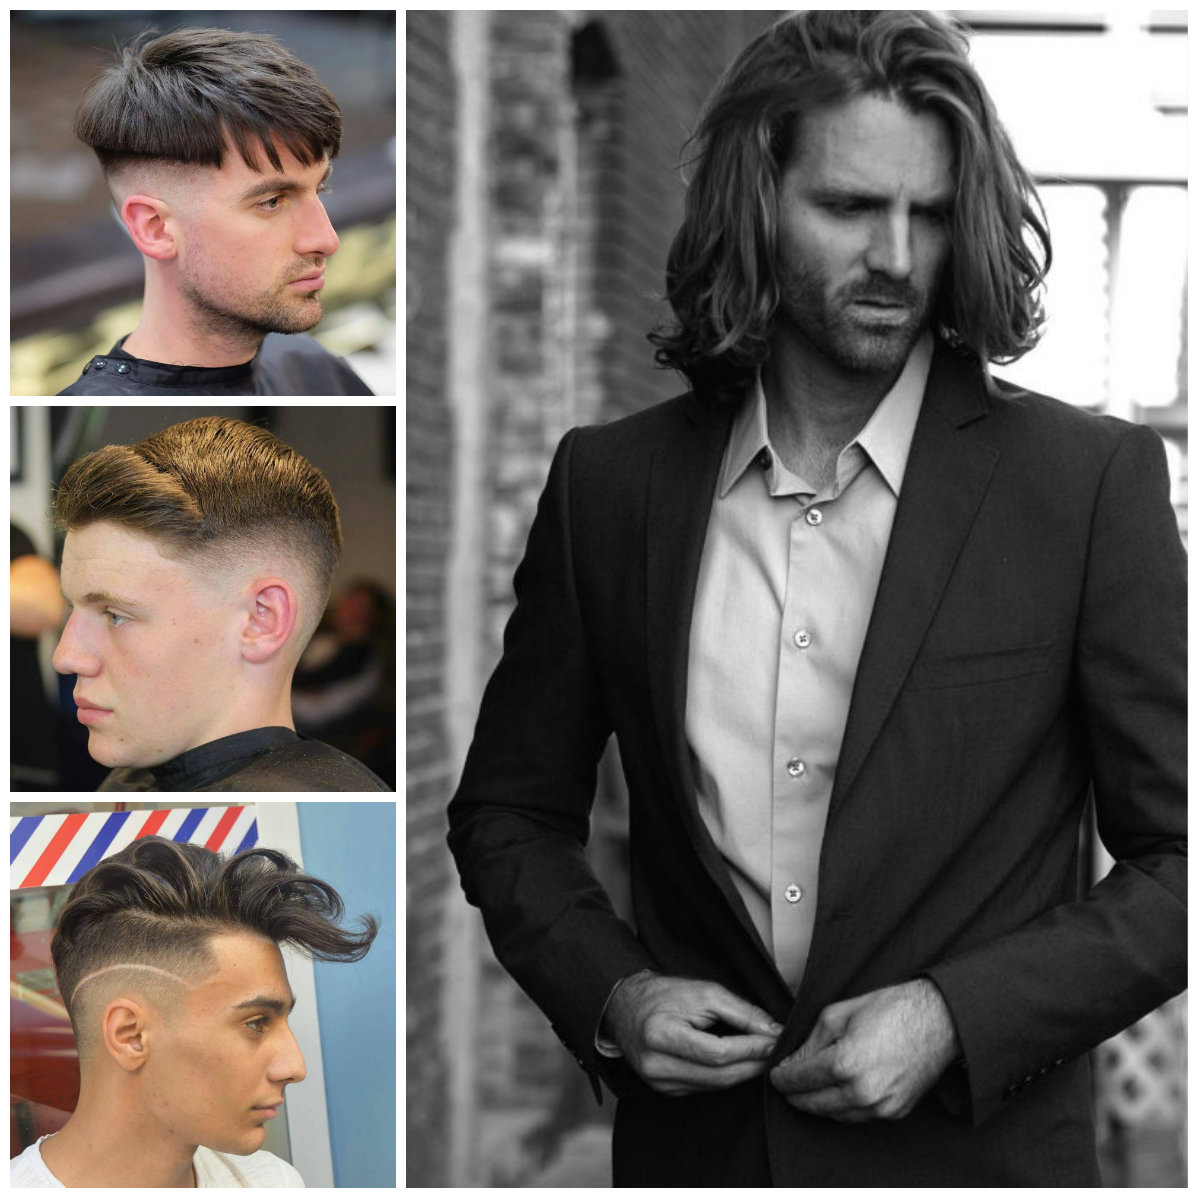 5 Upscale Hairstyles for Men 2017